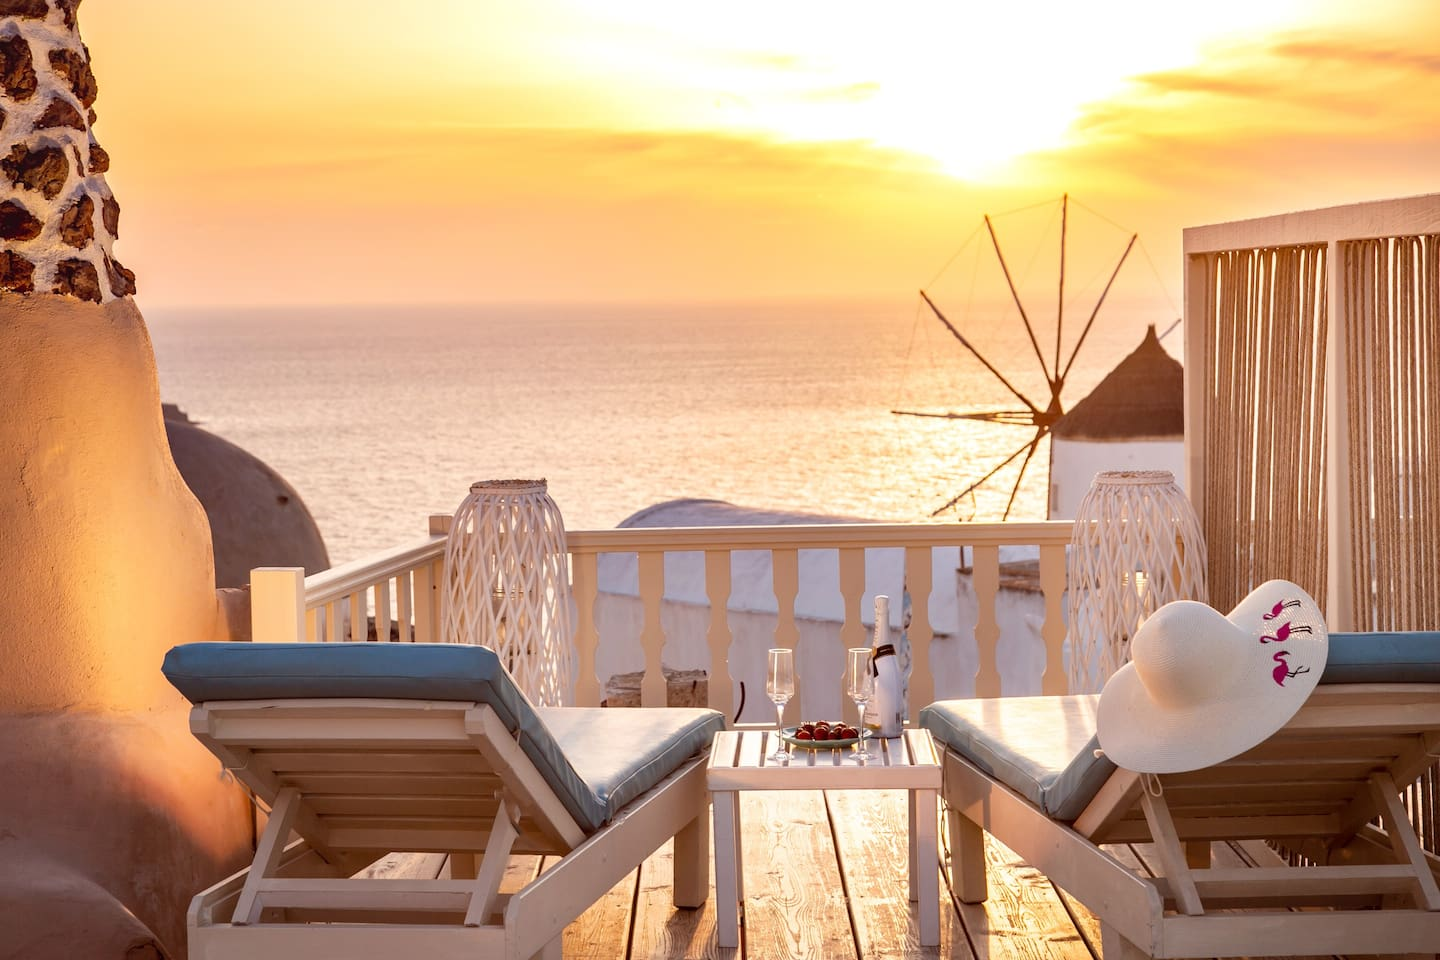 The amazing sunset view from the terrace